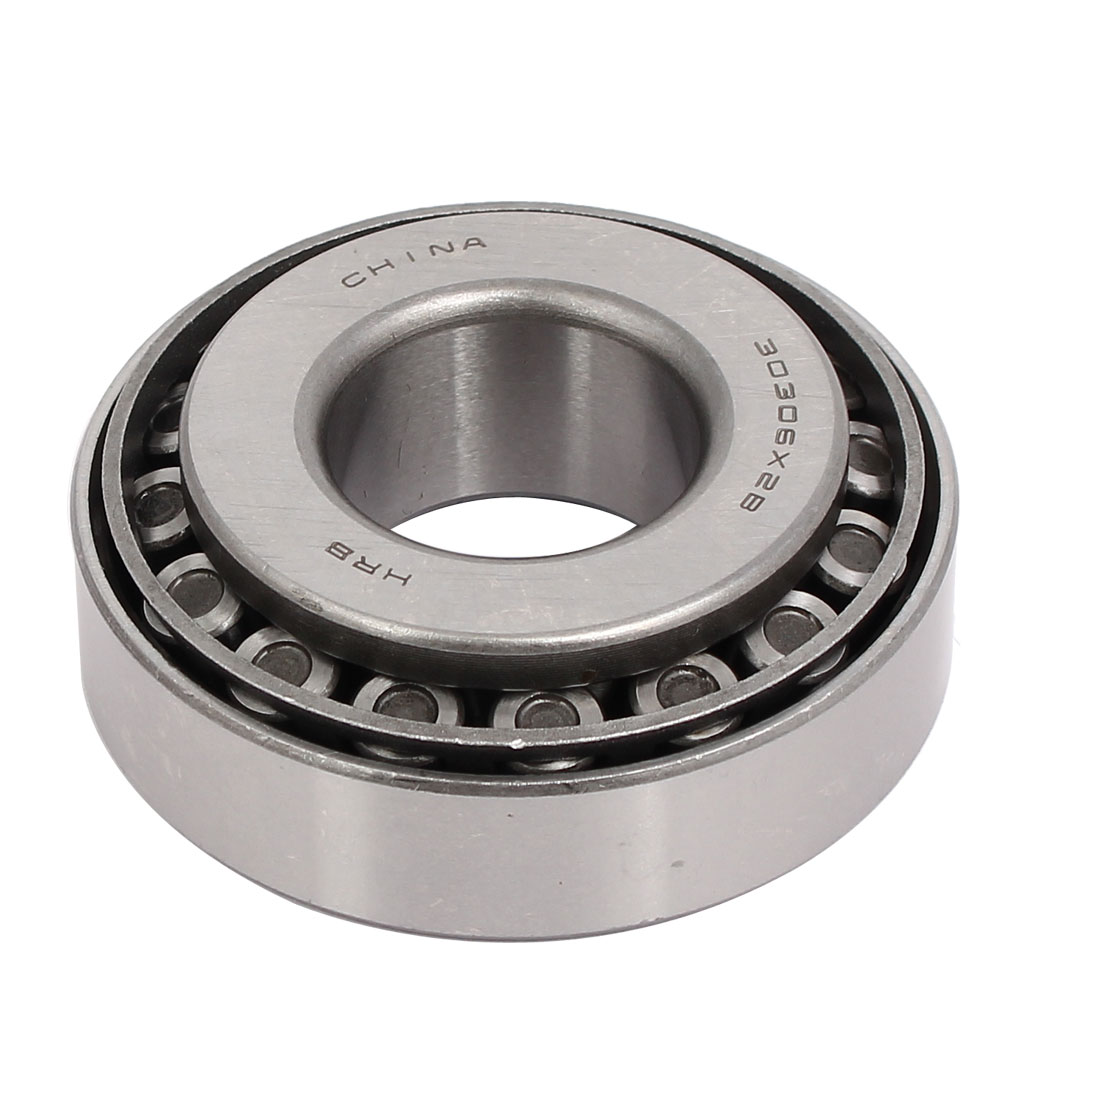 30306X2B 72mmx30mmx25mm Single Row Tapered Roller Bearing Silver Tone